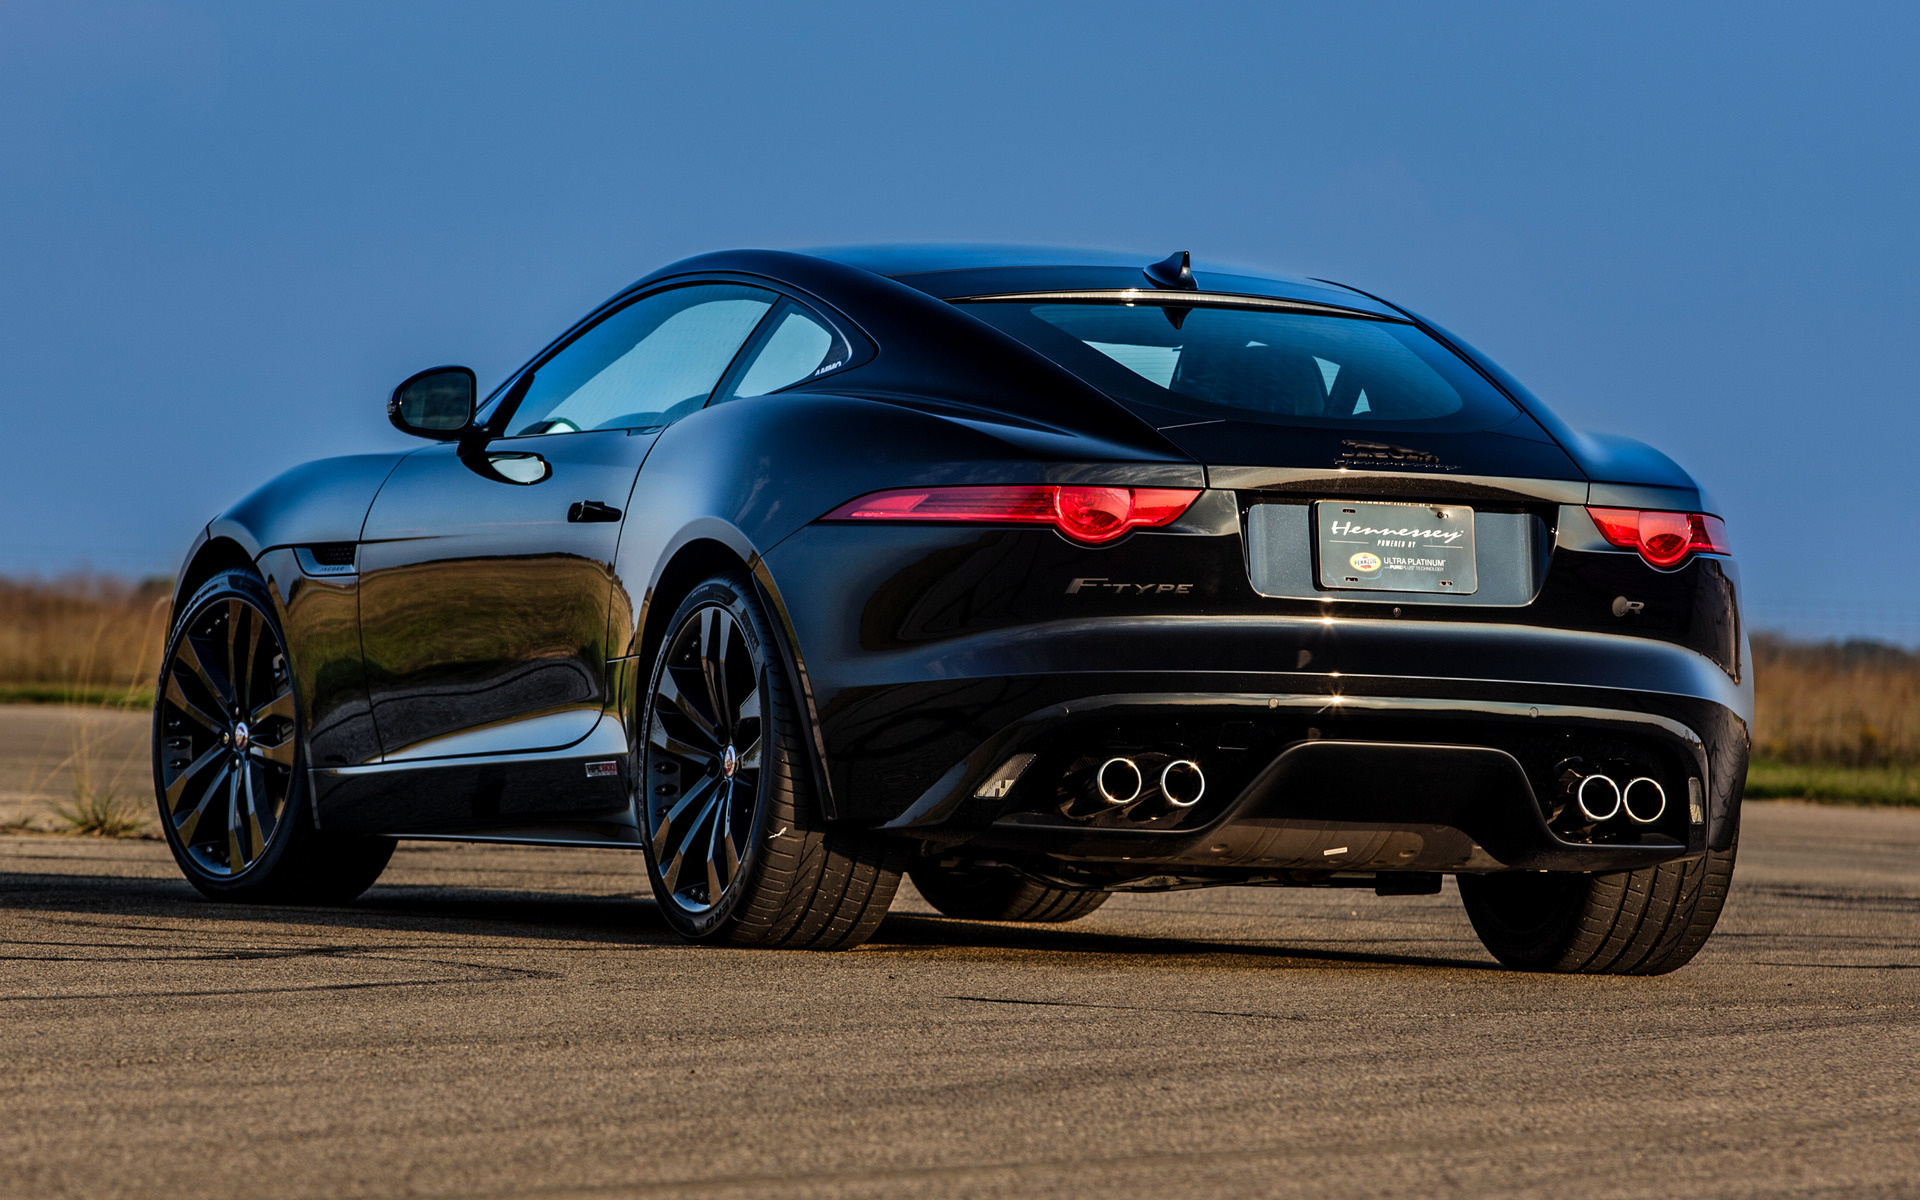 Acura Type R >> 2015 Jaguar F-Type R Coupe HPE600 by Hennessey - Wallpapers and HD Images | Car Pixel